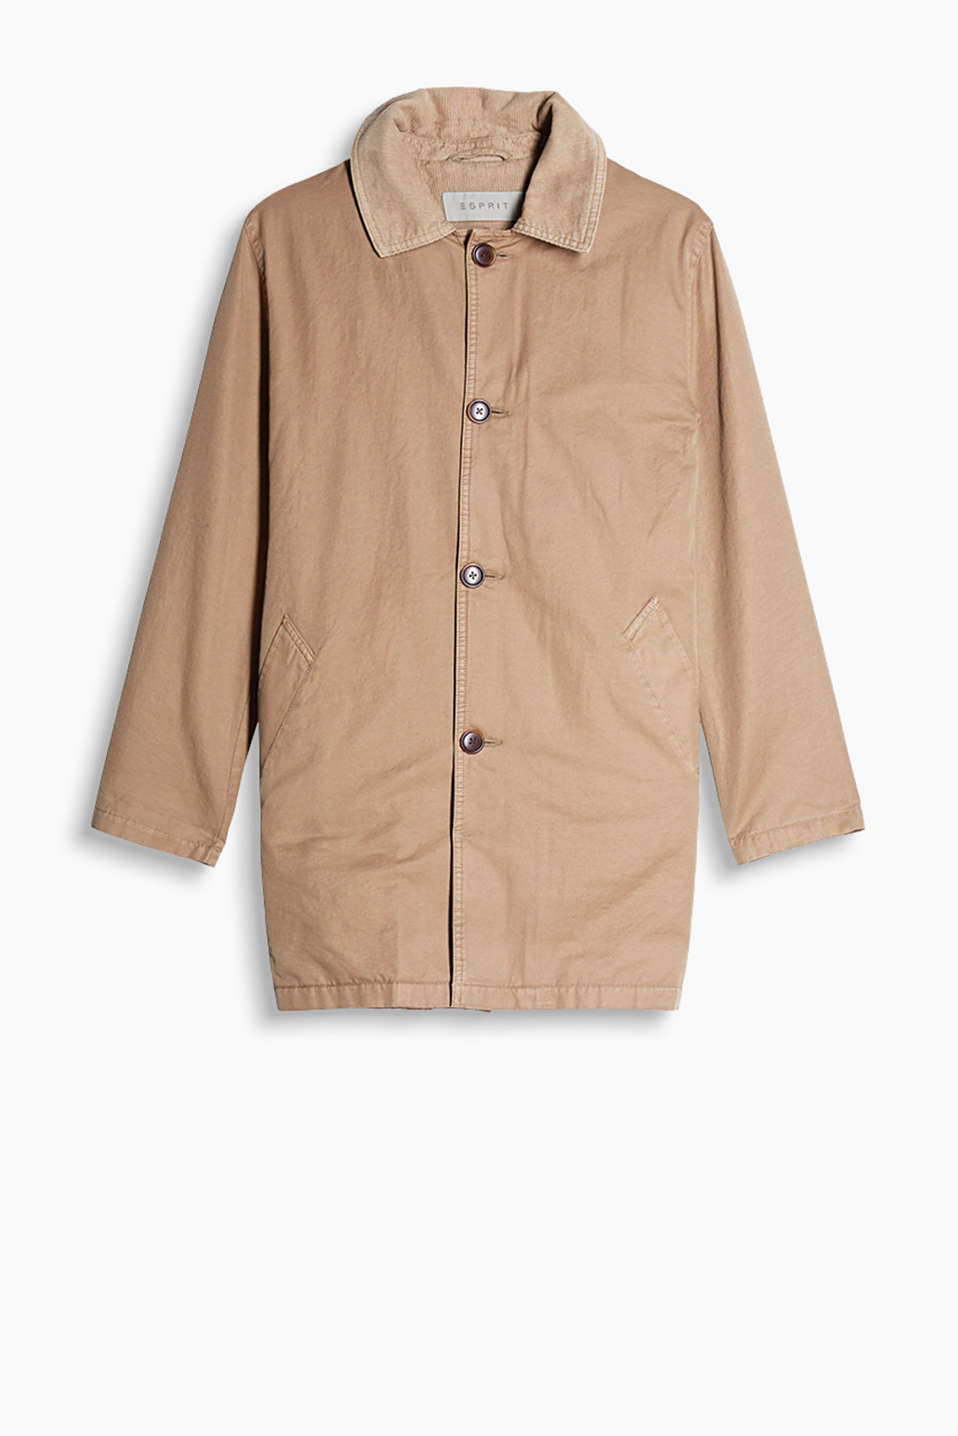 Transitional coat with horn-look buttons, made of pure cotton